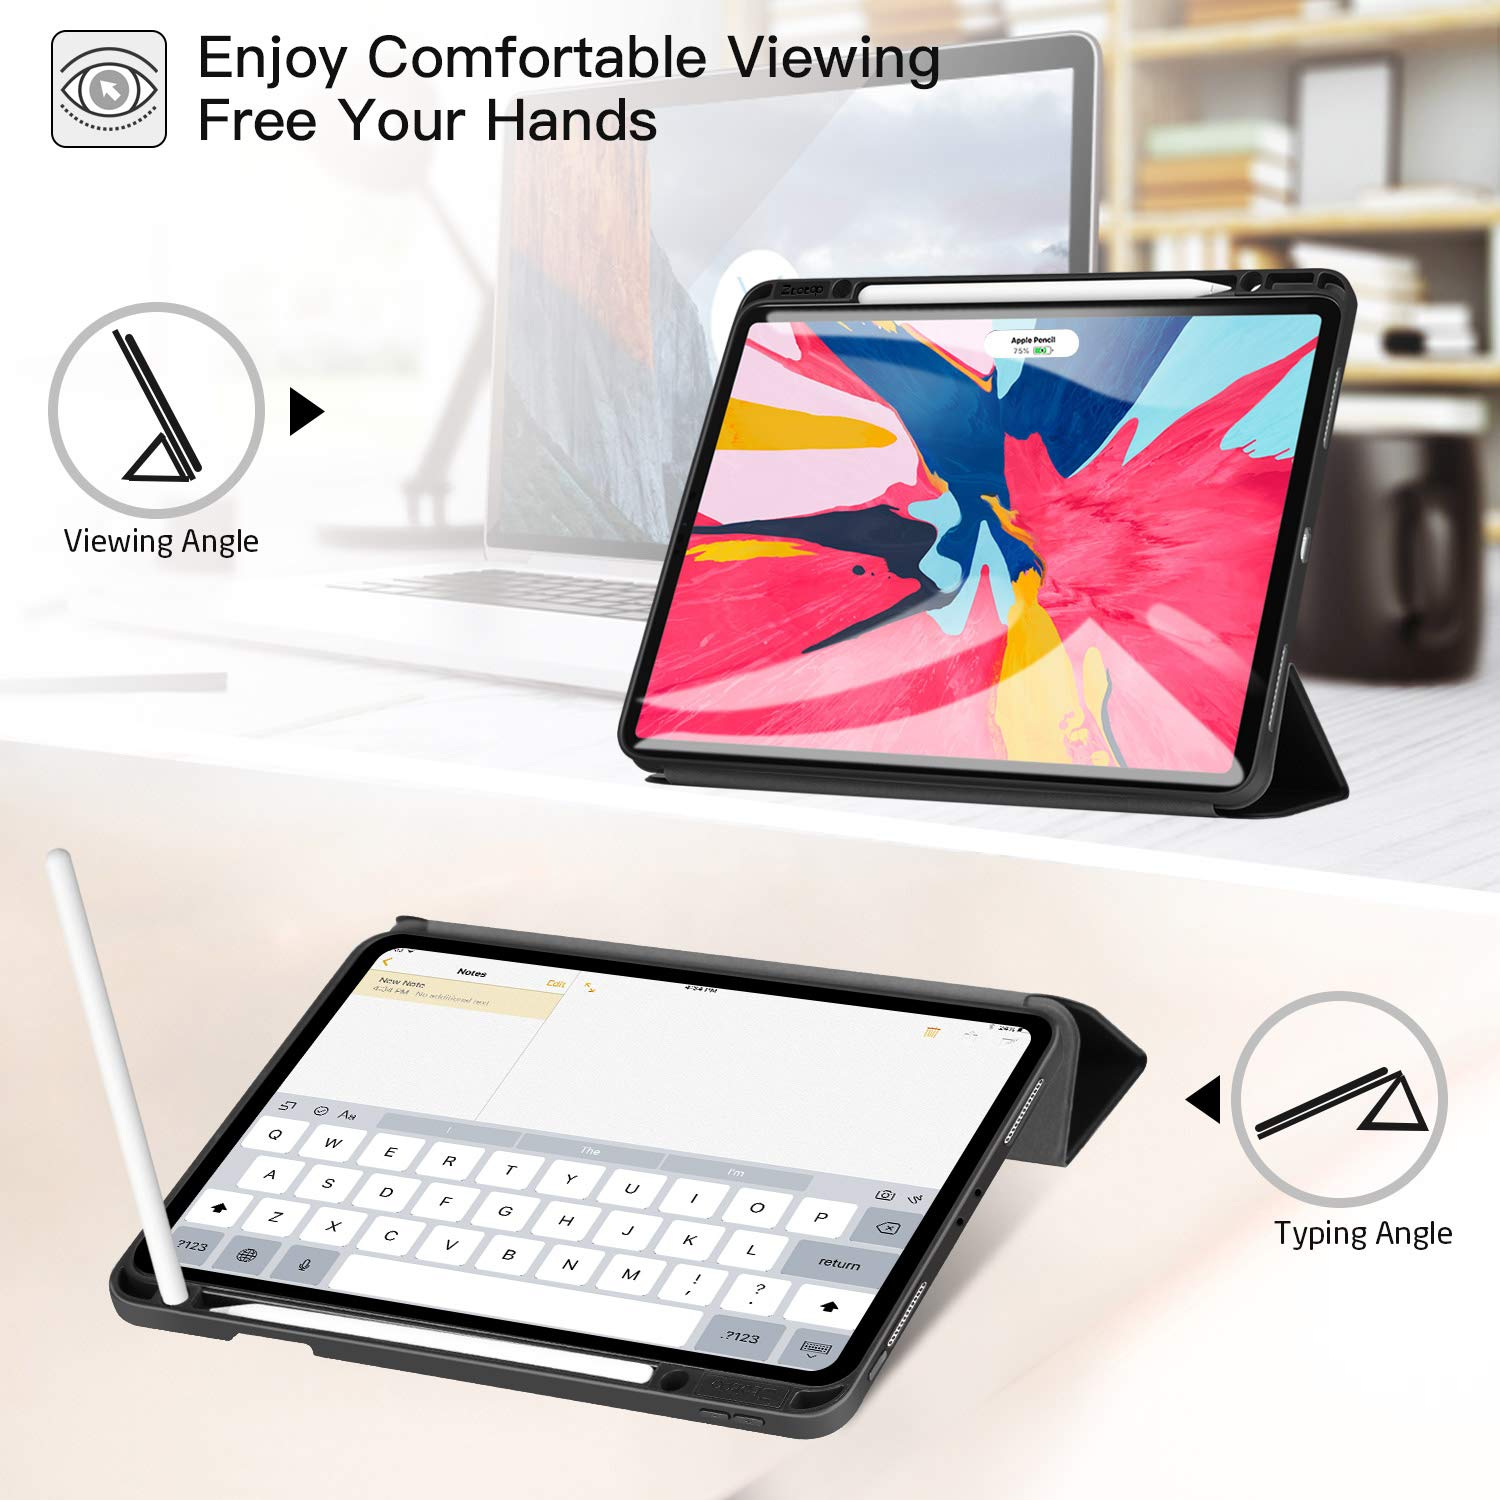 Ztotop Case for iPad Pro 12.9 Inch 2018, Full Body Protective Rugged Shockproof Case with iPad Pencil Holder, Auto Sleep/Wake, Support iPad Pencil Charging for iPad Pro 12.9 Inch 3rd Gen - Black by Ztotop (Image #7)